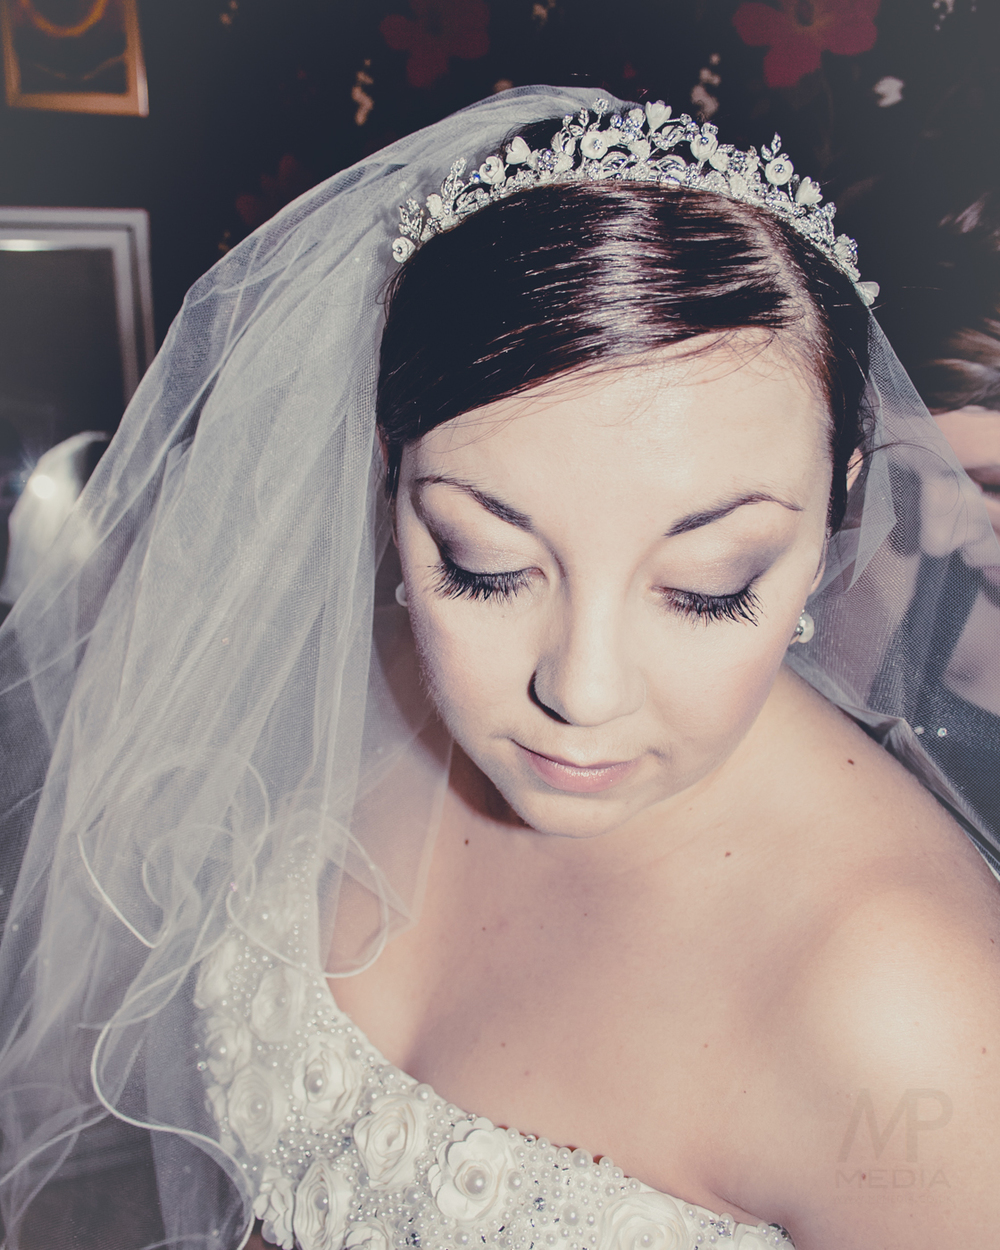 115 - Chris and Natalies Wedding (MAIN) - DO NOT SHARE THIS IMAGES ONLINE -4333.JPG